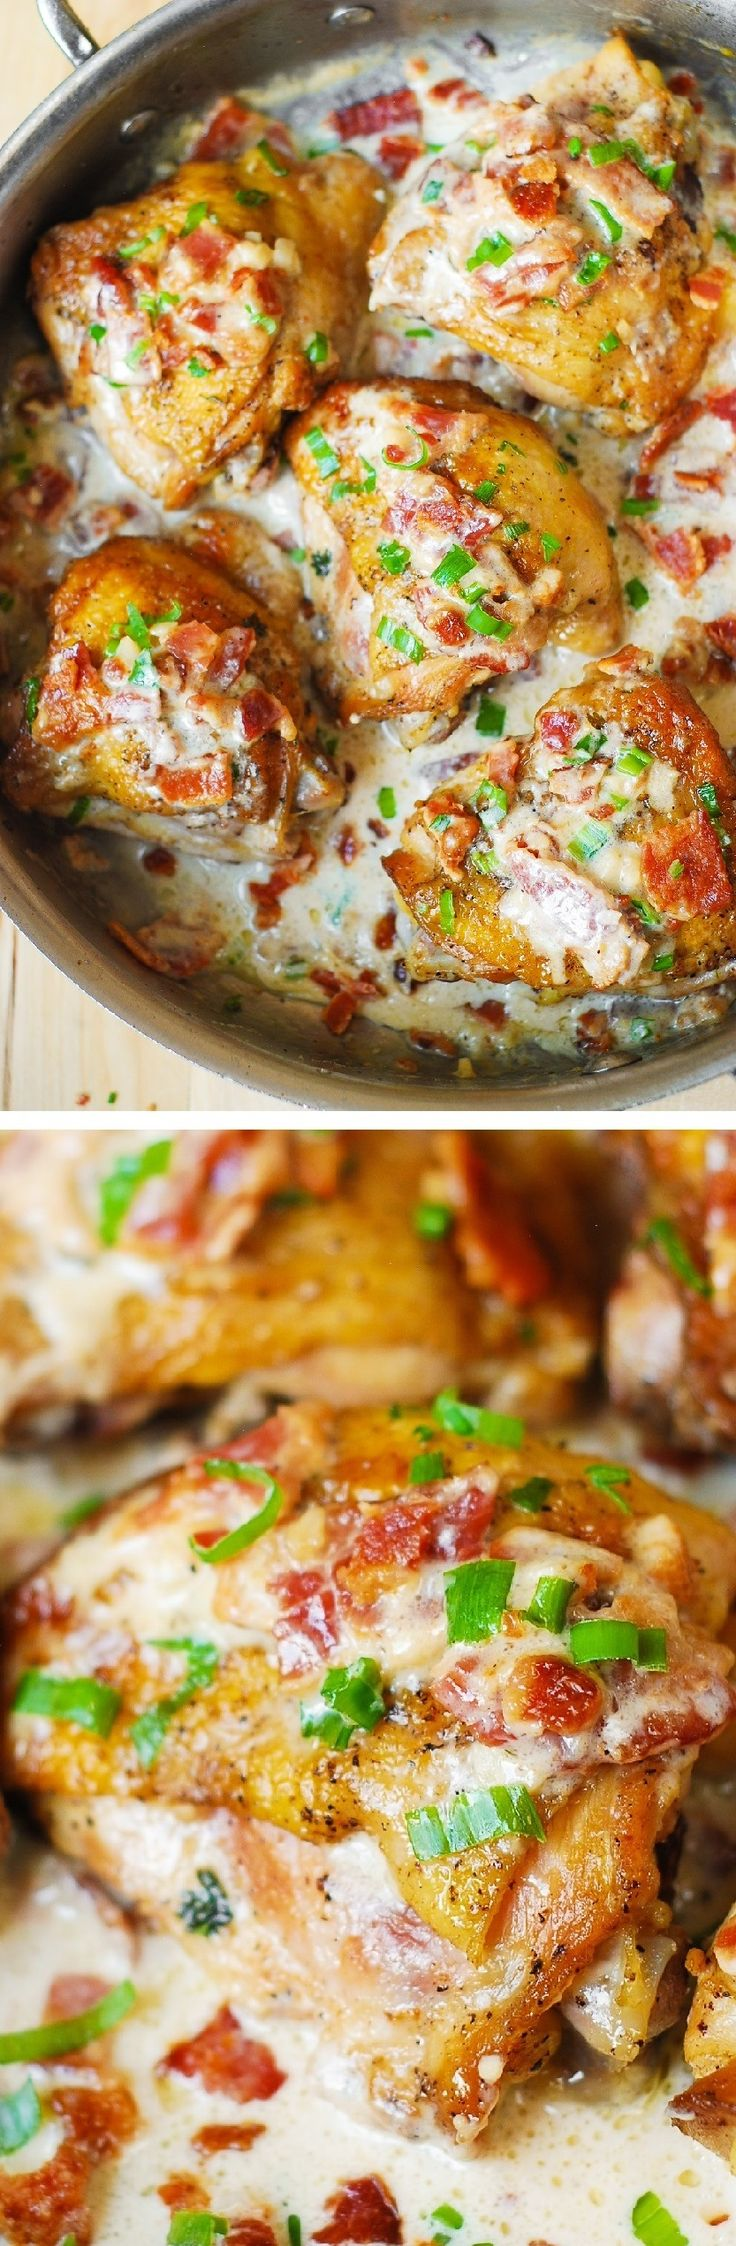 Pan-Fried Chicken Thighs with Creamy Bacon Sauce - A quick and easy recipe for savory skin-on, bone-in chicken thighs!